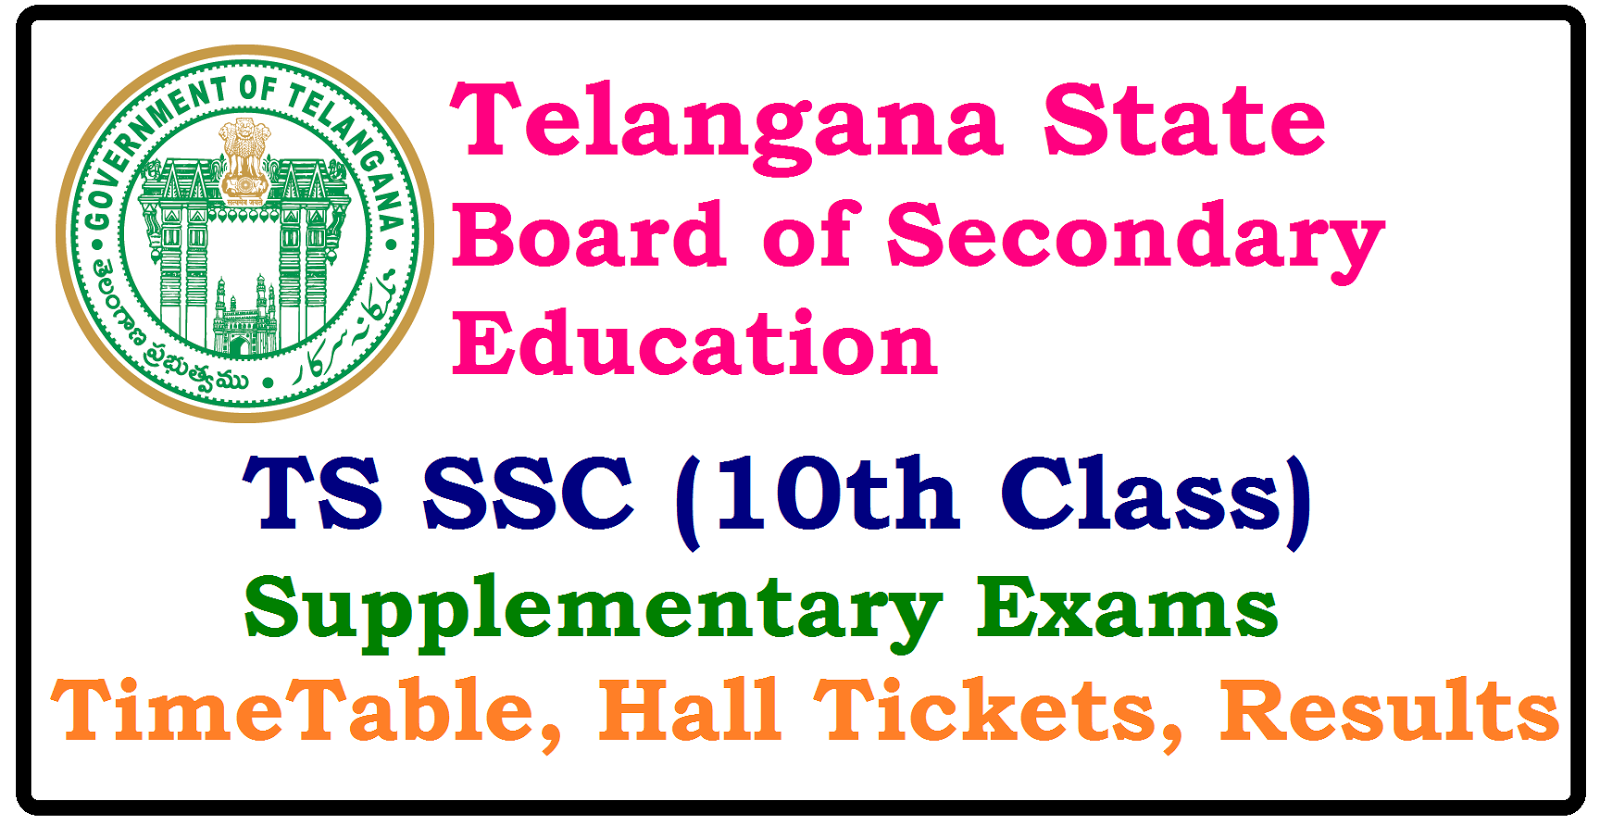 TS SSC Advance Suplementary Exams 2019 Time table Download